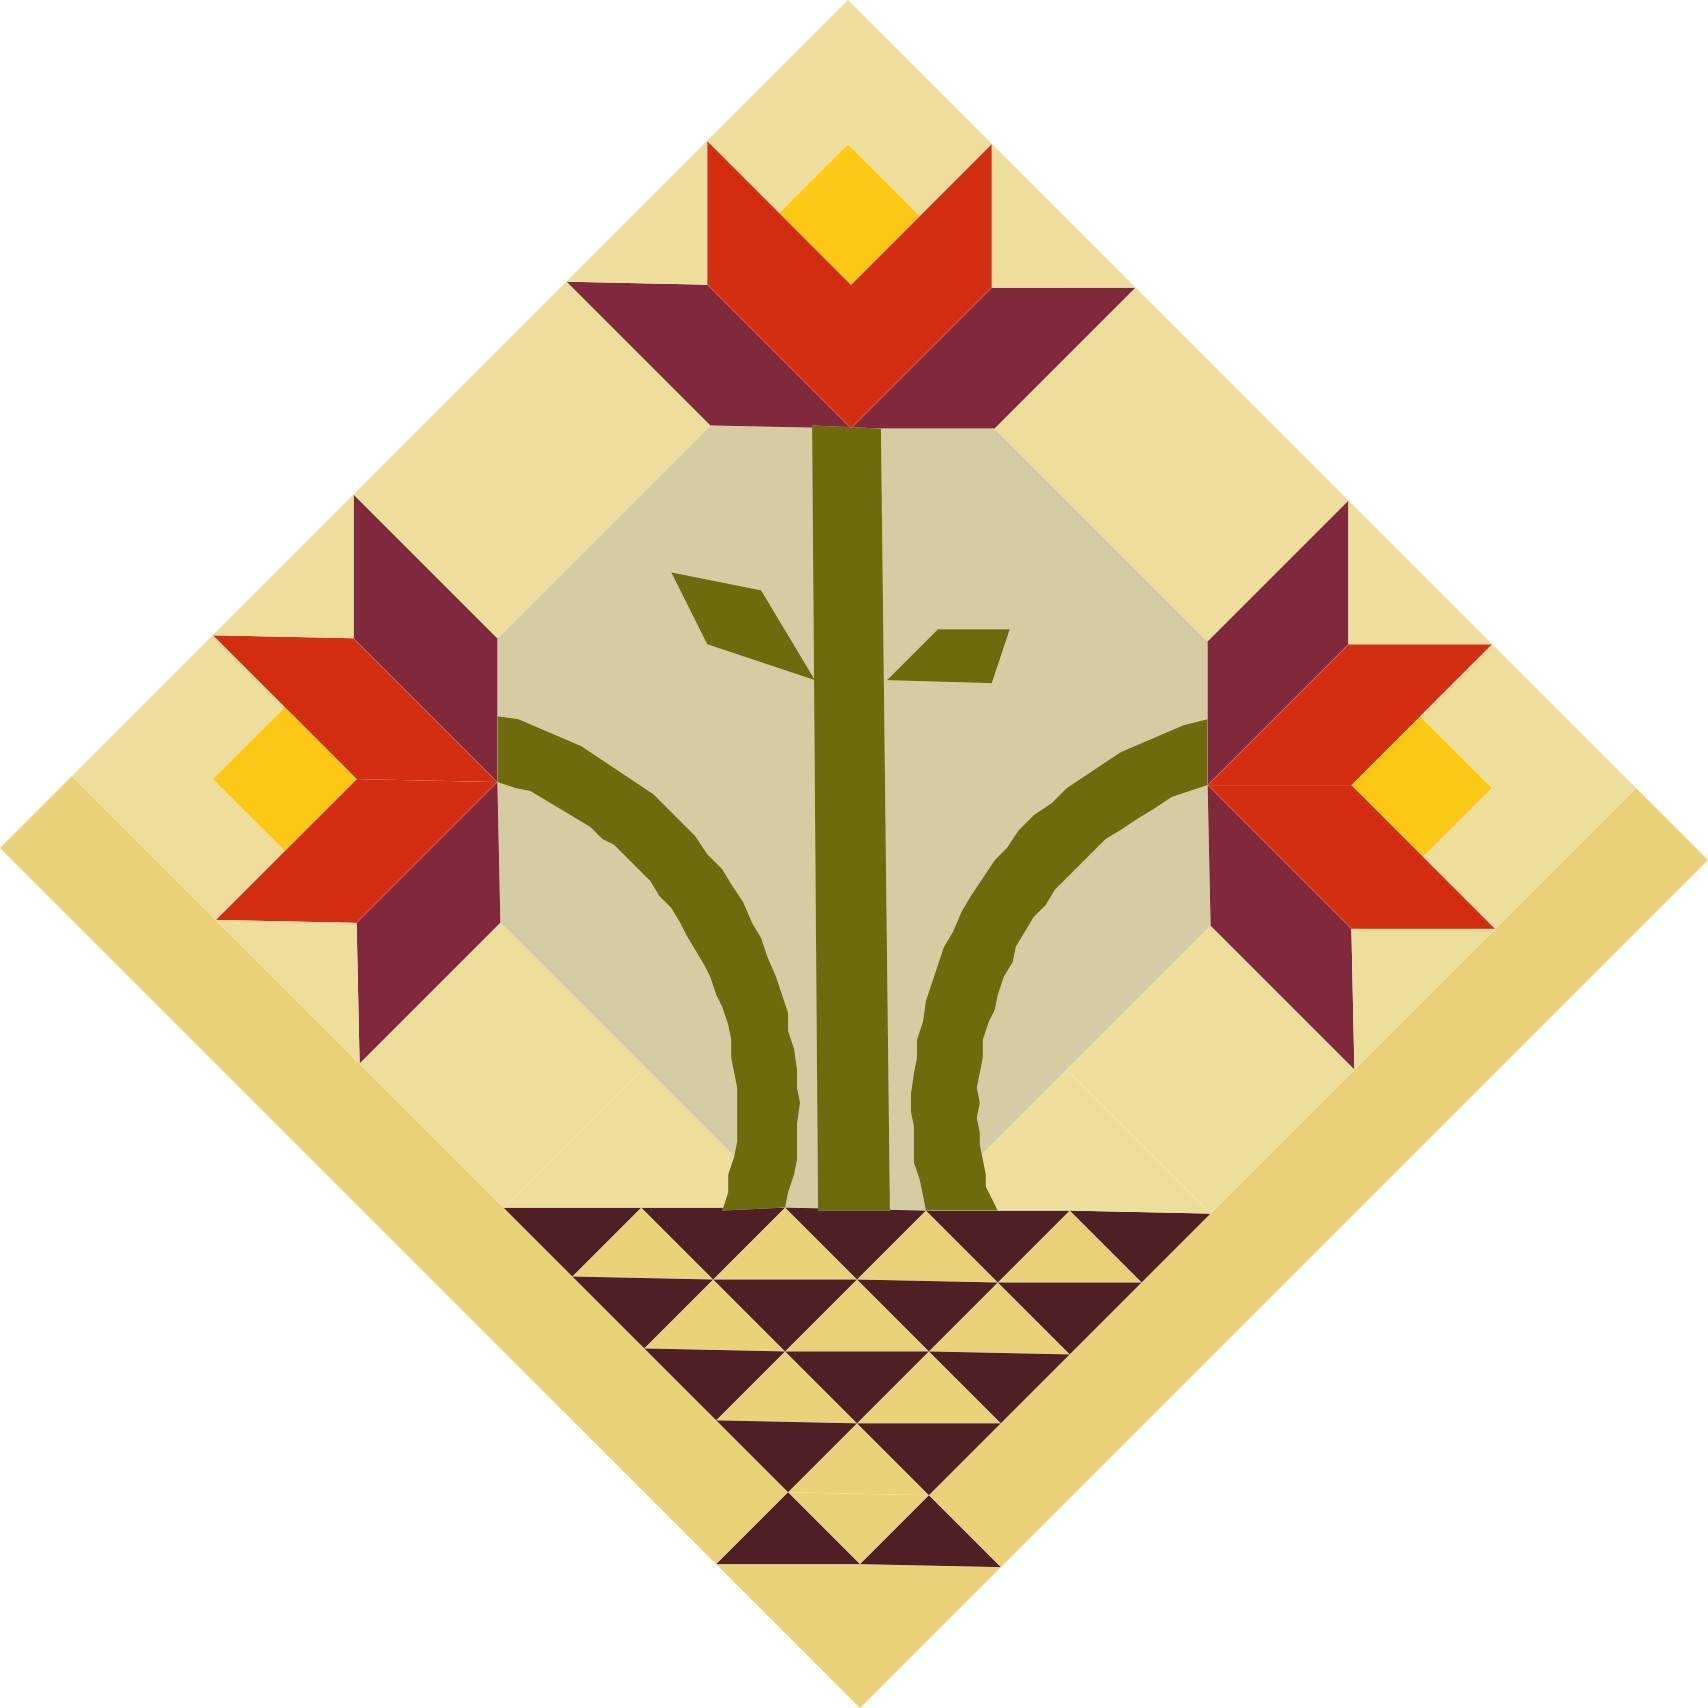 image of quilt block called Planting the Seeds of Knowledge